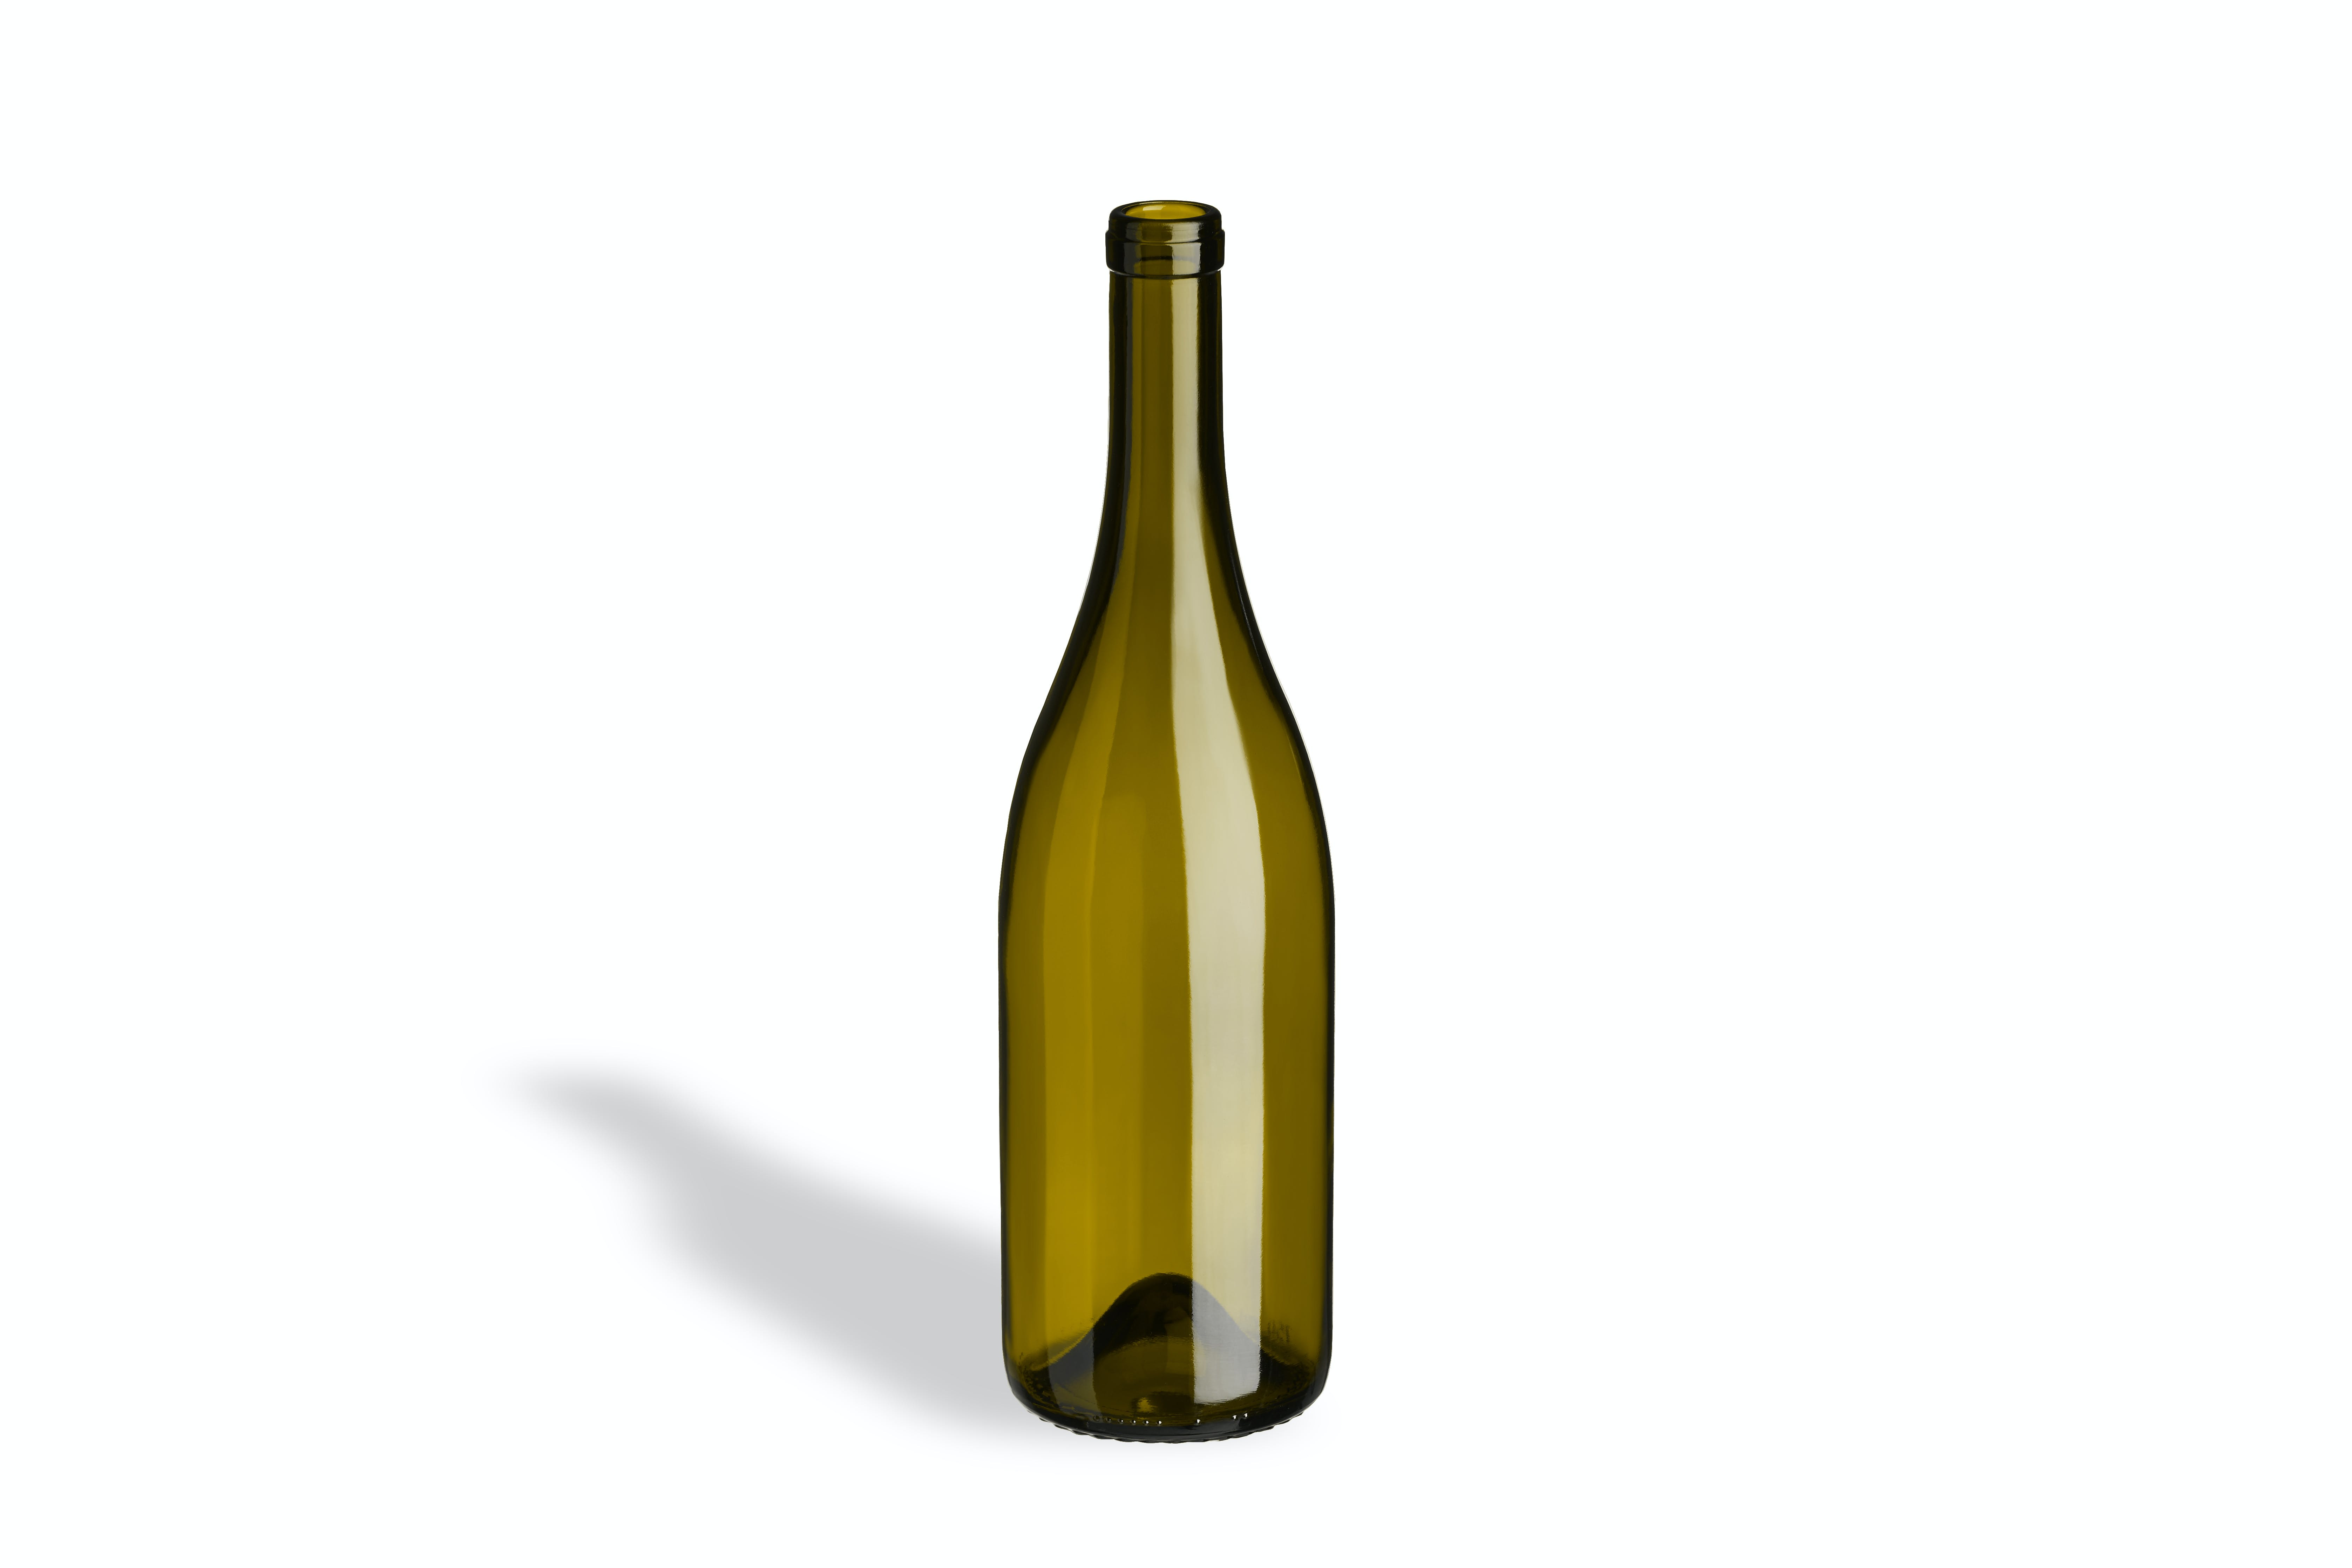 bb15cae8eecf Wine Bottles Product Catalog - Photos, Pricing, and Specifications